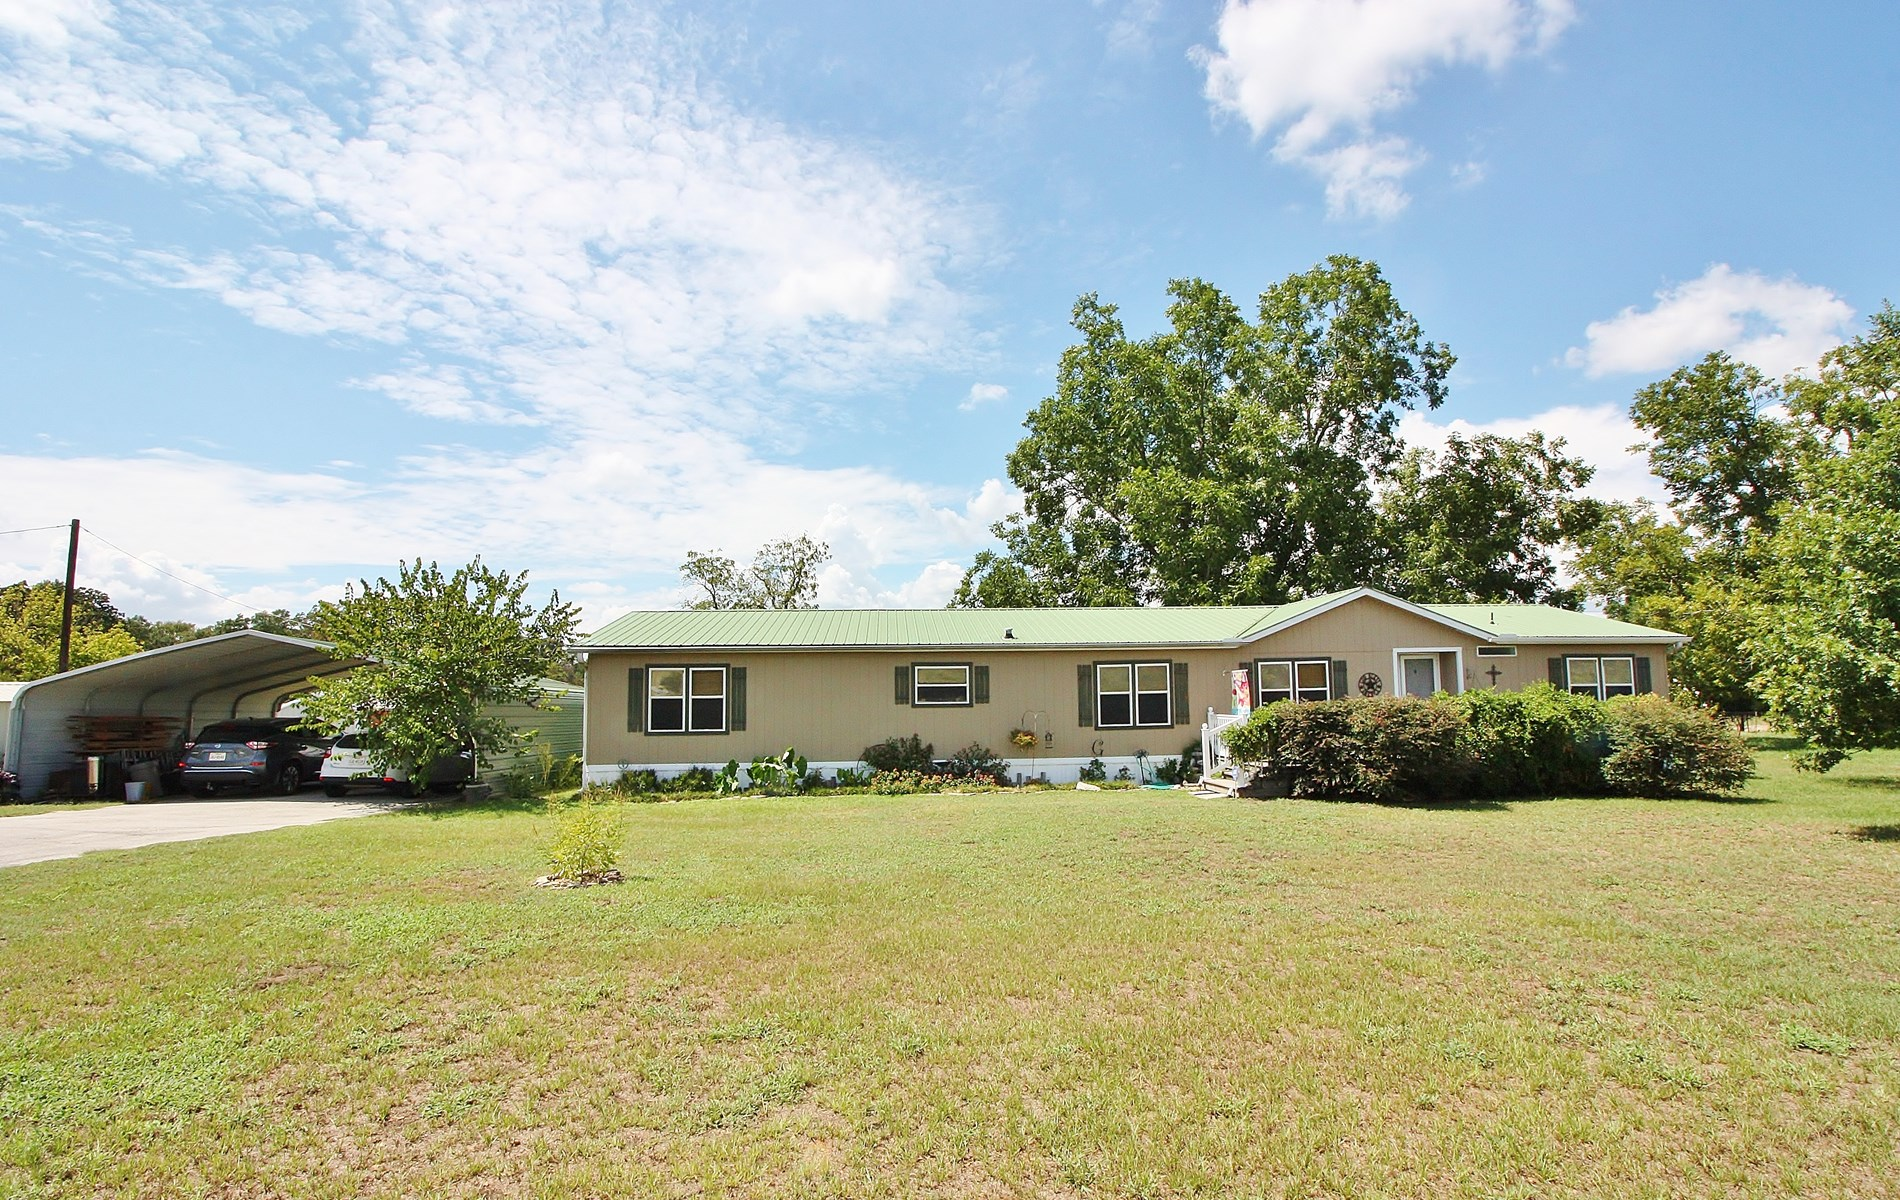 Country Home For Sale in Buffalo, Texas